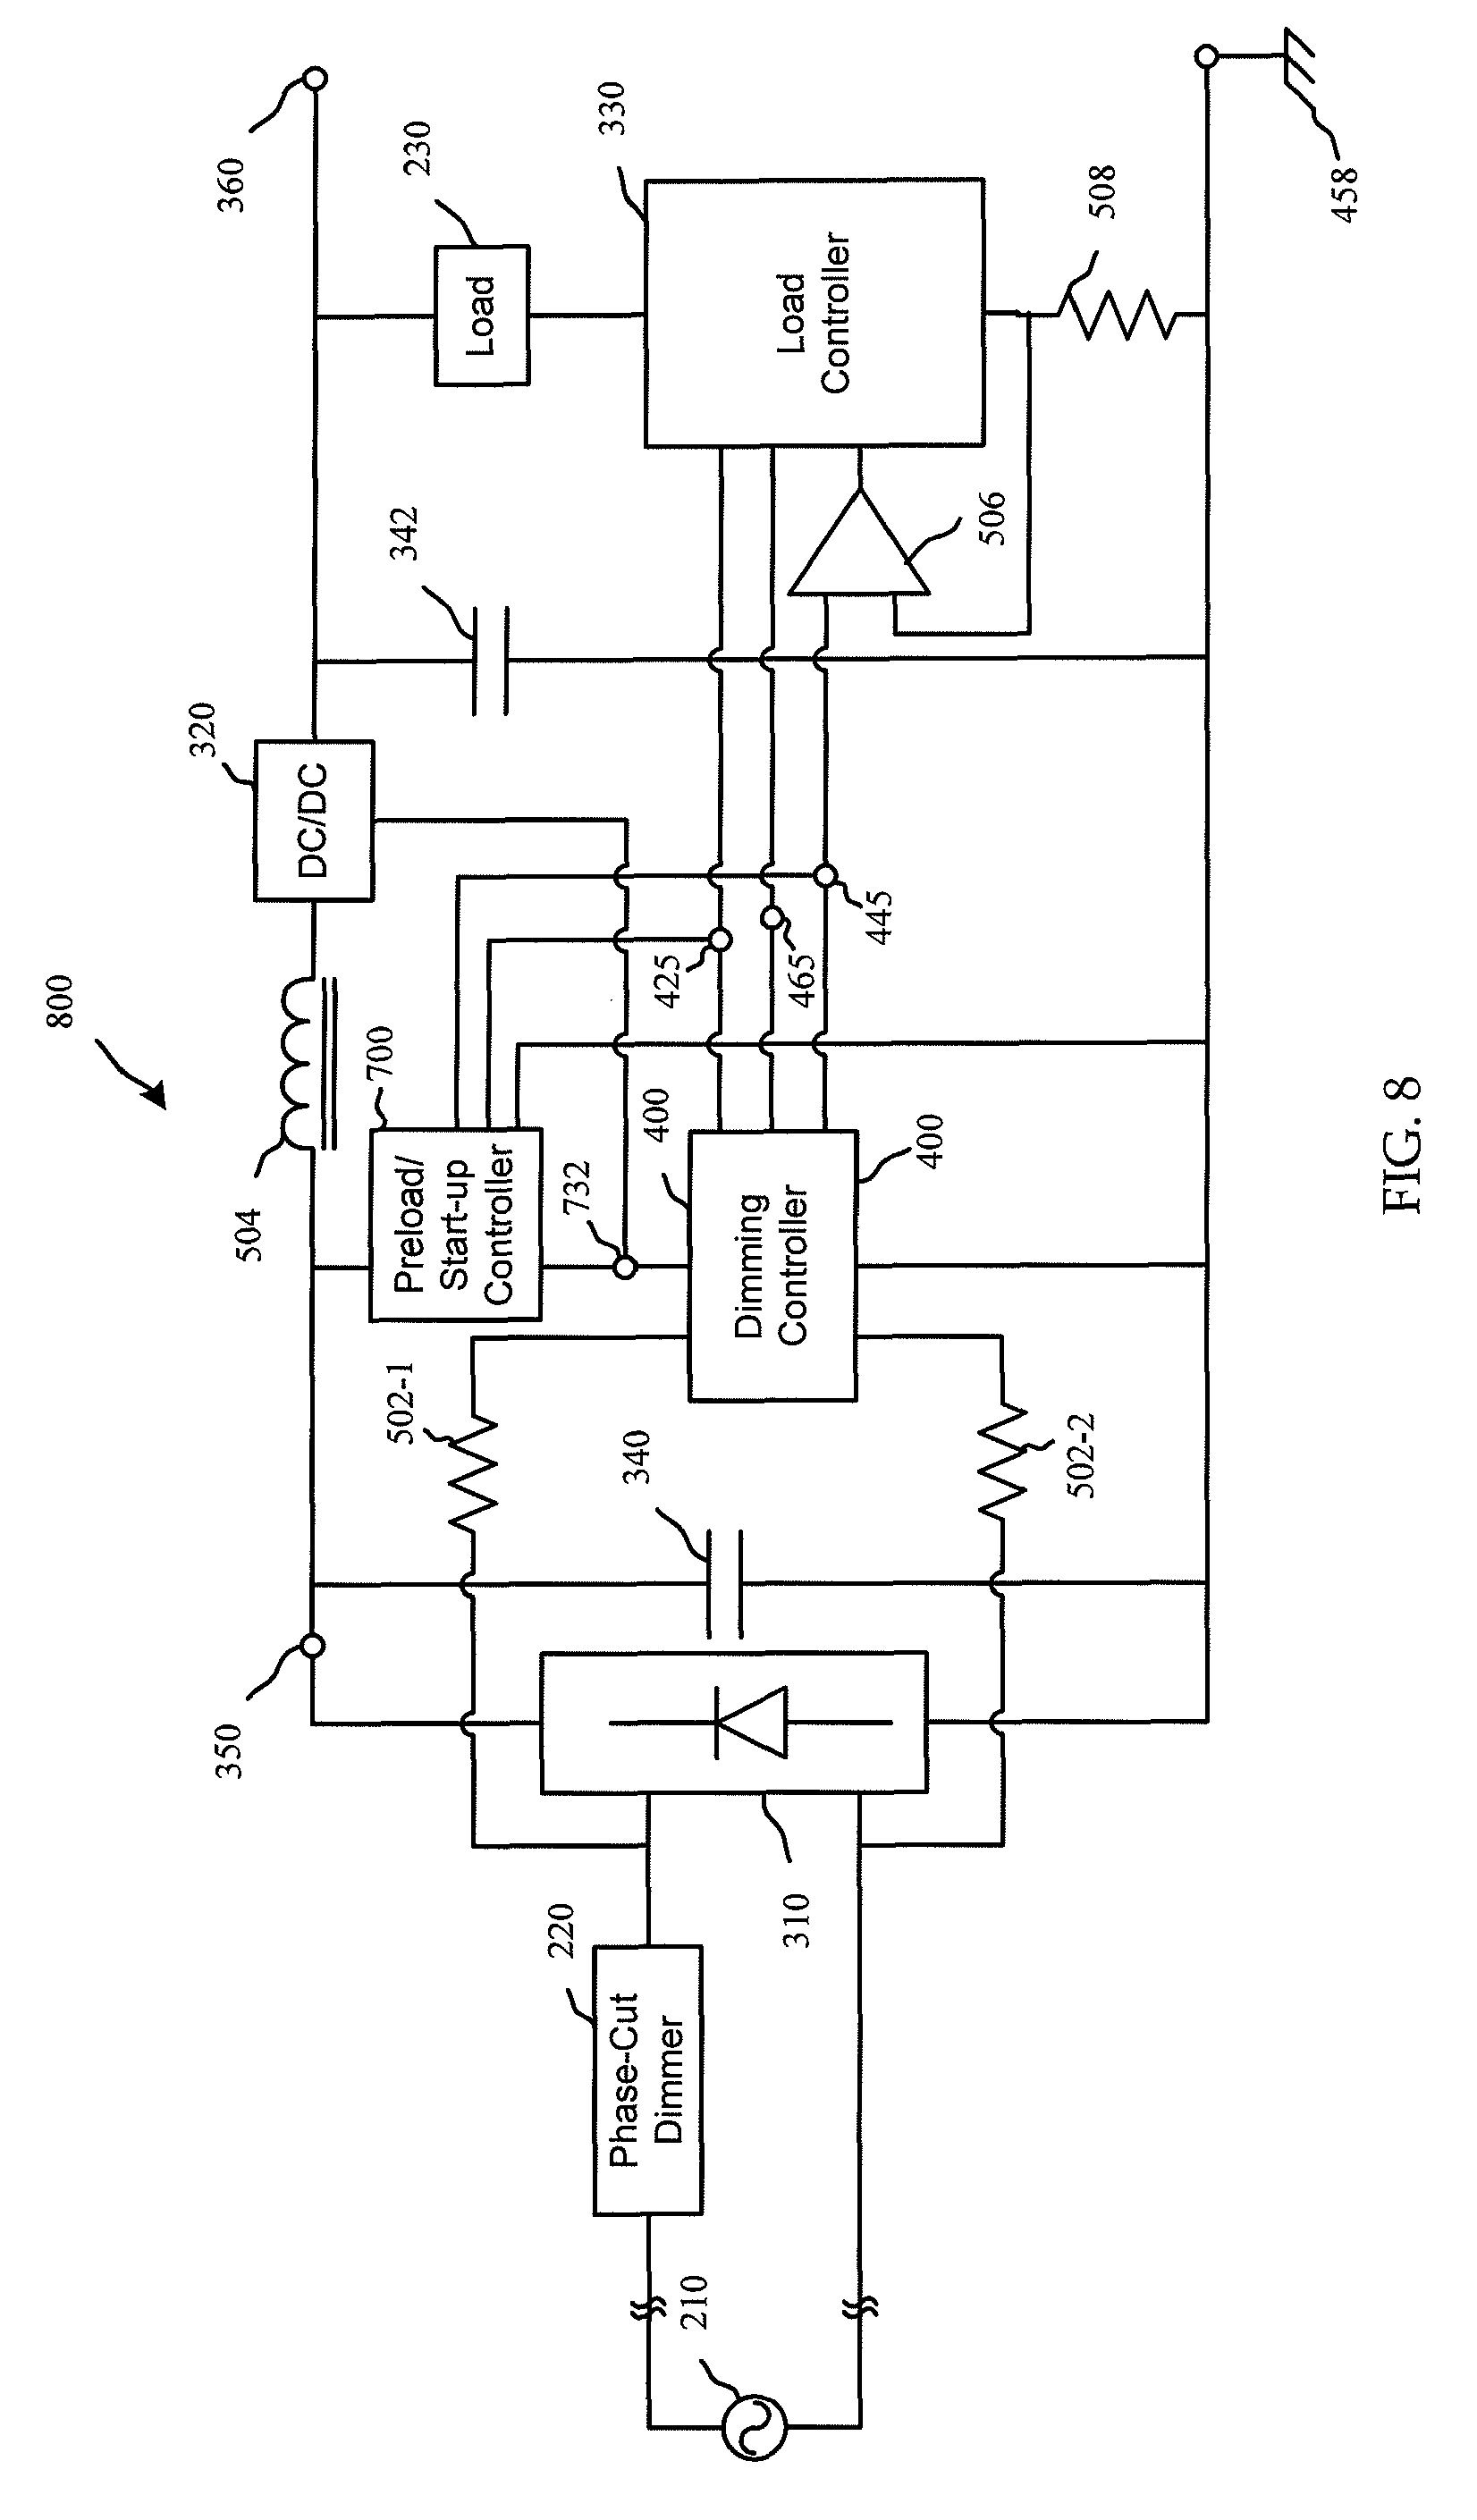 patent us8102167 - phase-cut dimming circuit